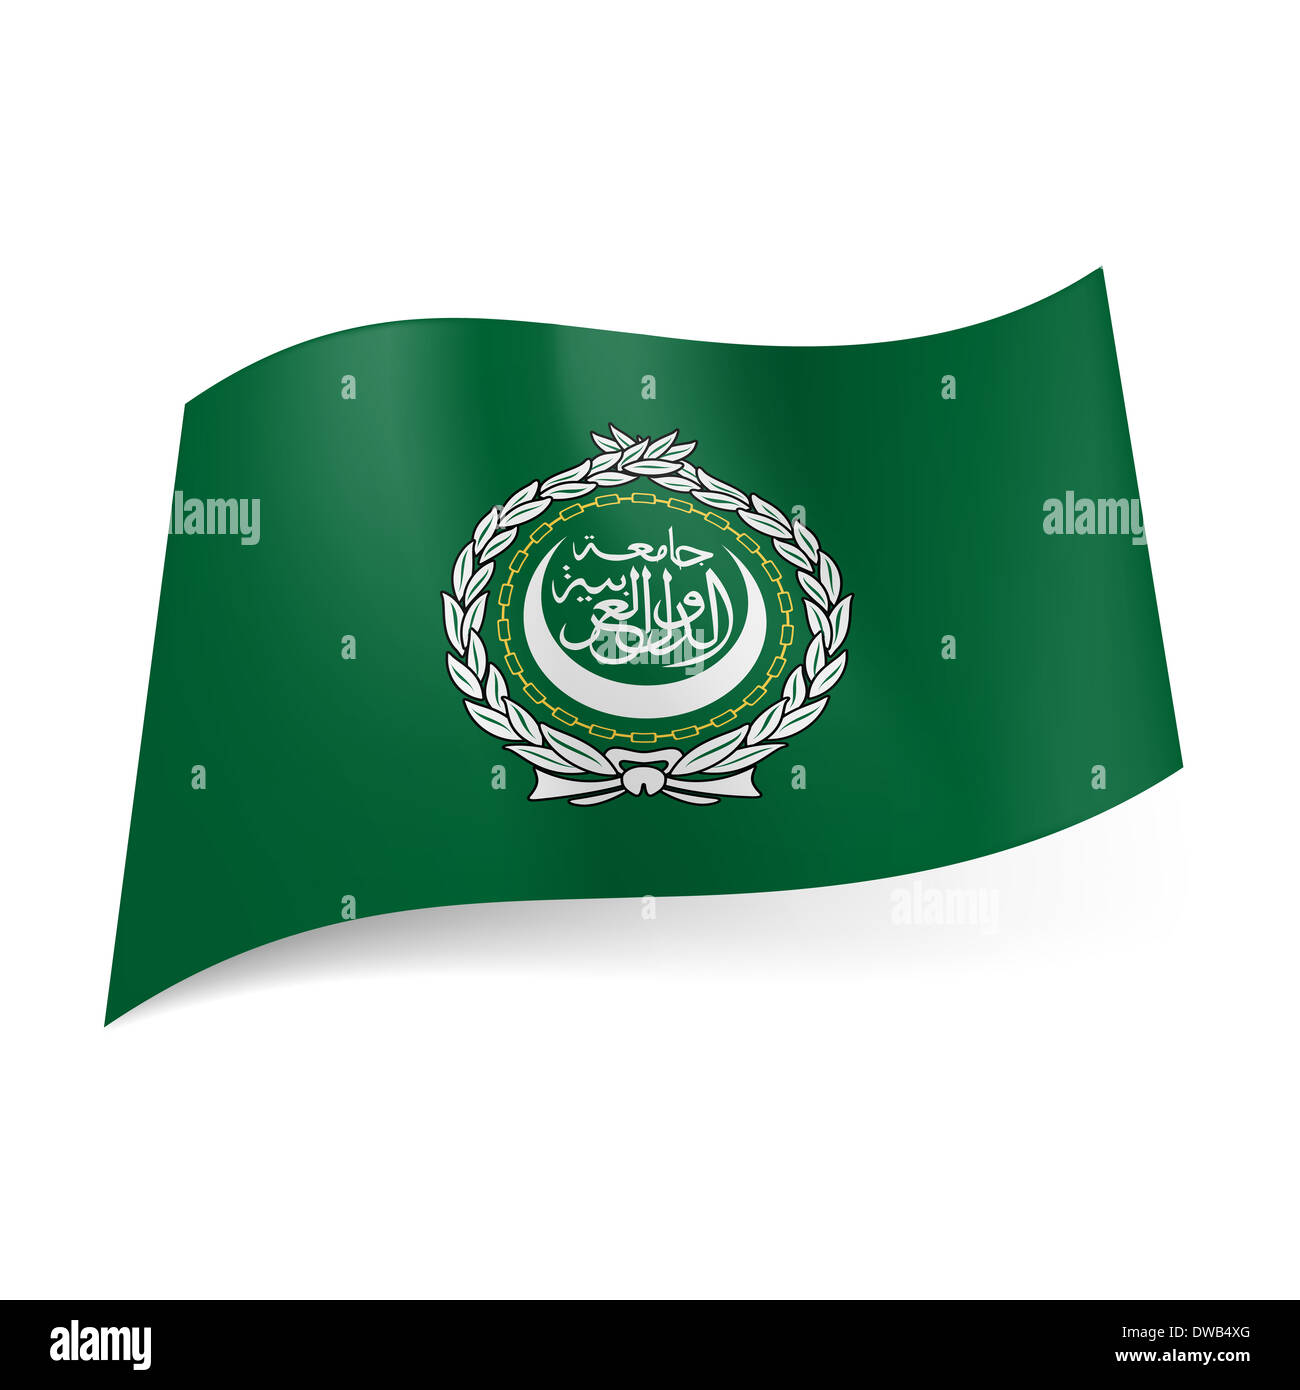 Flag of Arab League: seal on green background - Stock Image